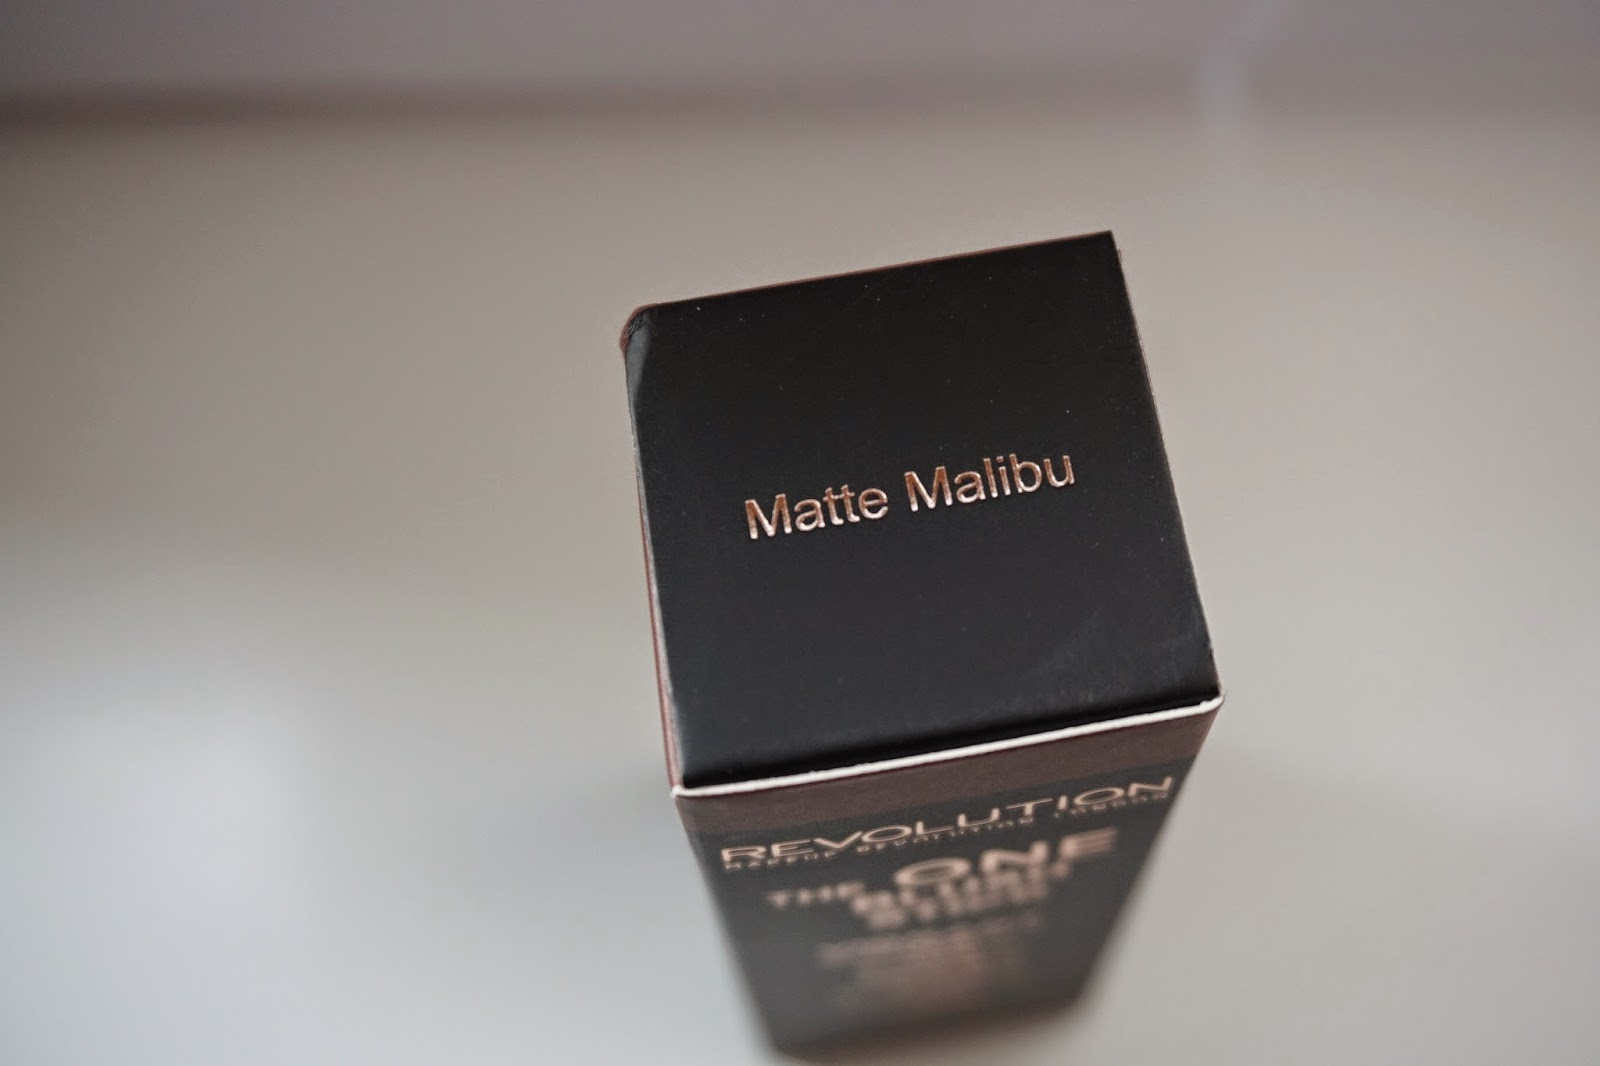 Makeup Revolution The One Blush Stick Matte Malibu - Dusty Foxes Beauty Blog